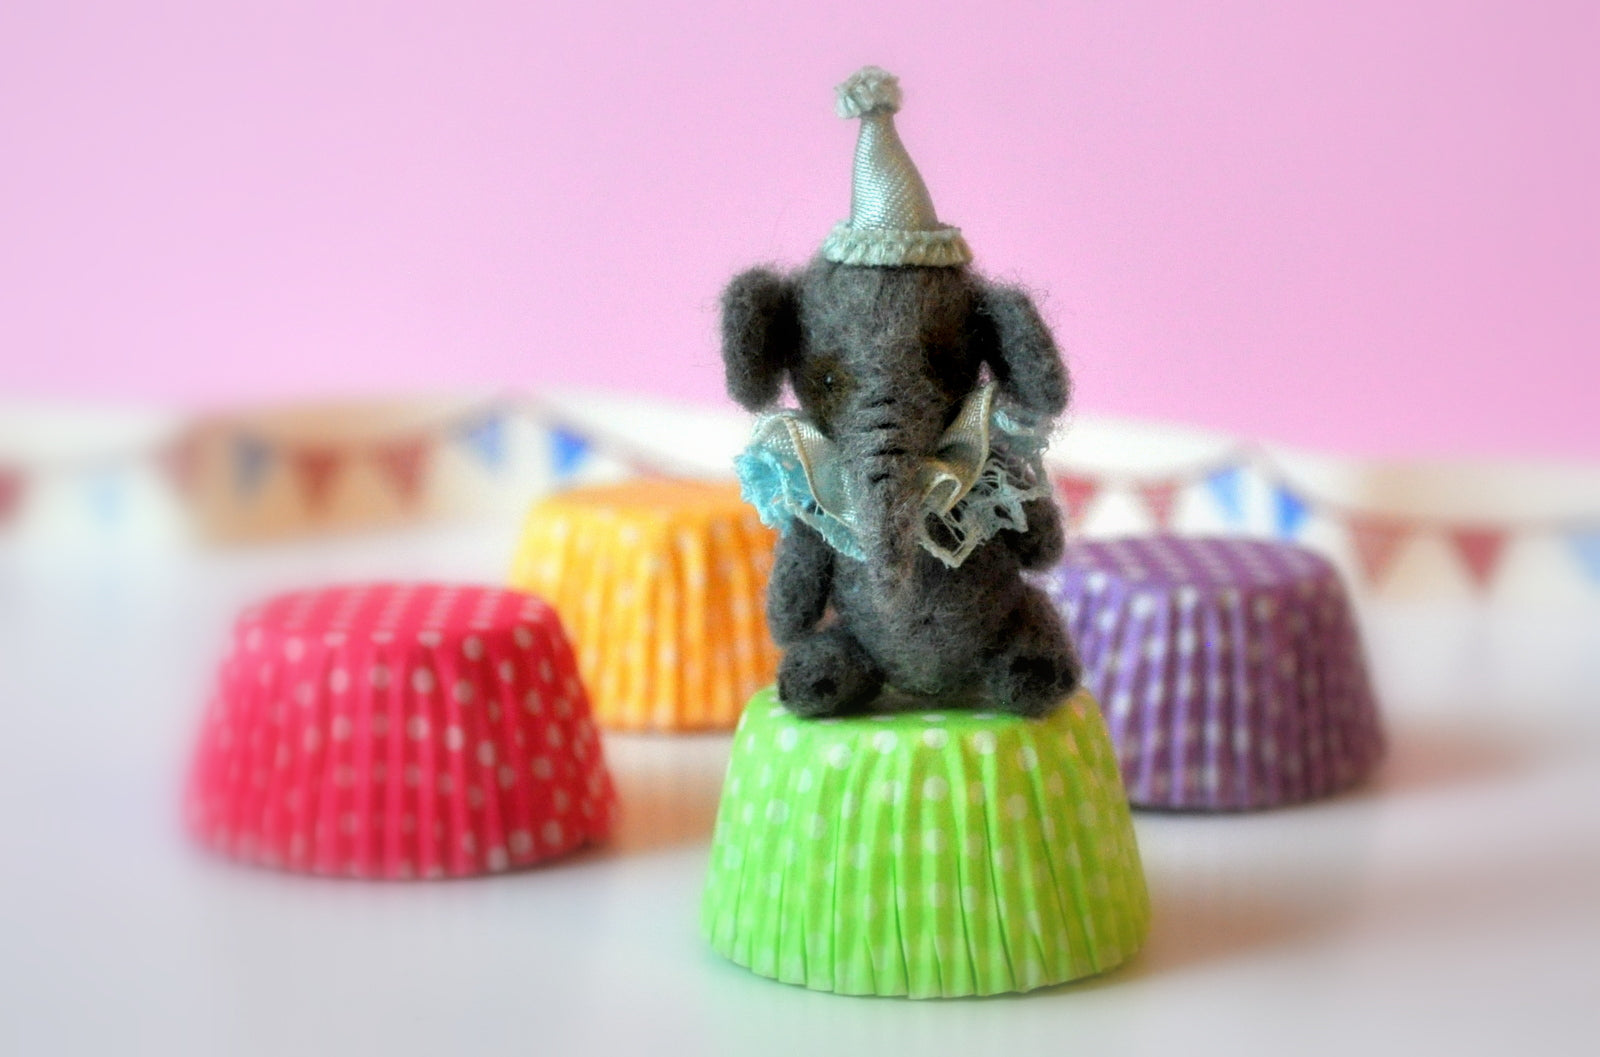 Needle Felted Circus Elephant Toy by Elmarie Wood-Callander